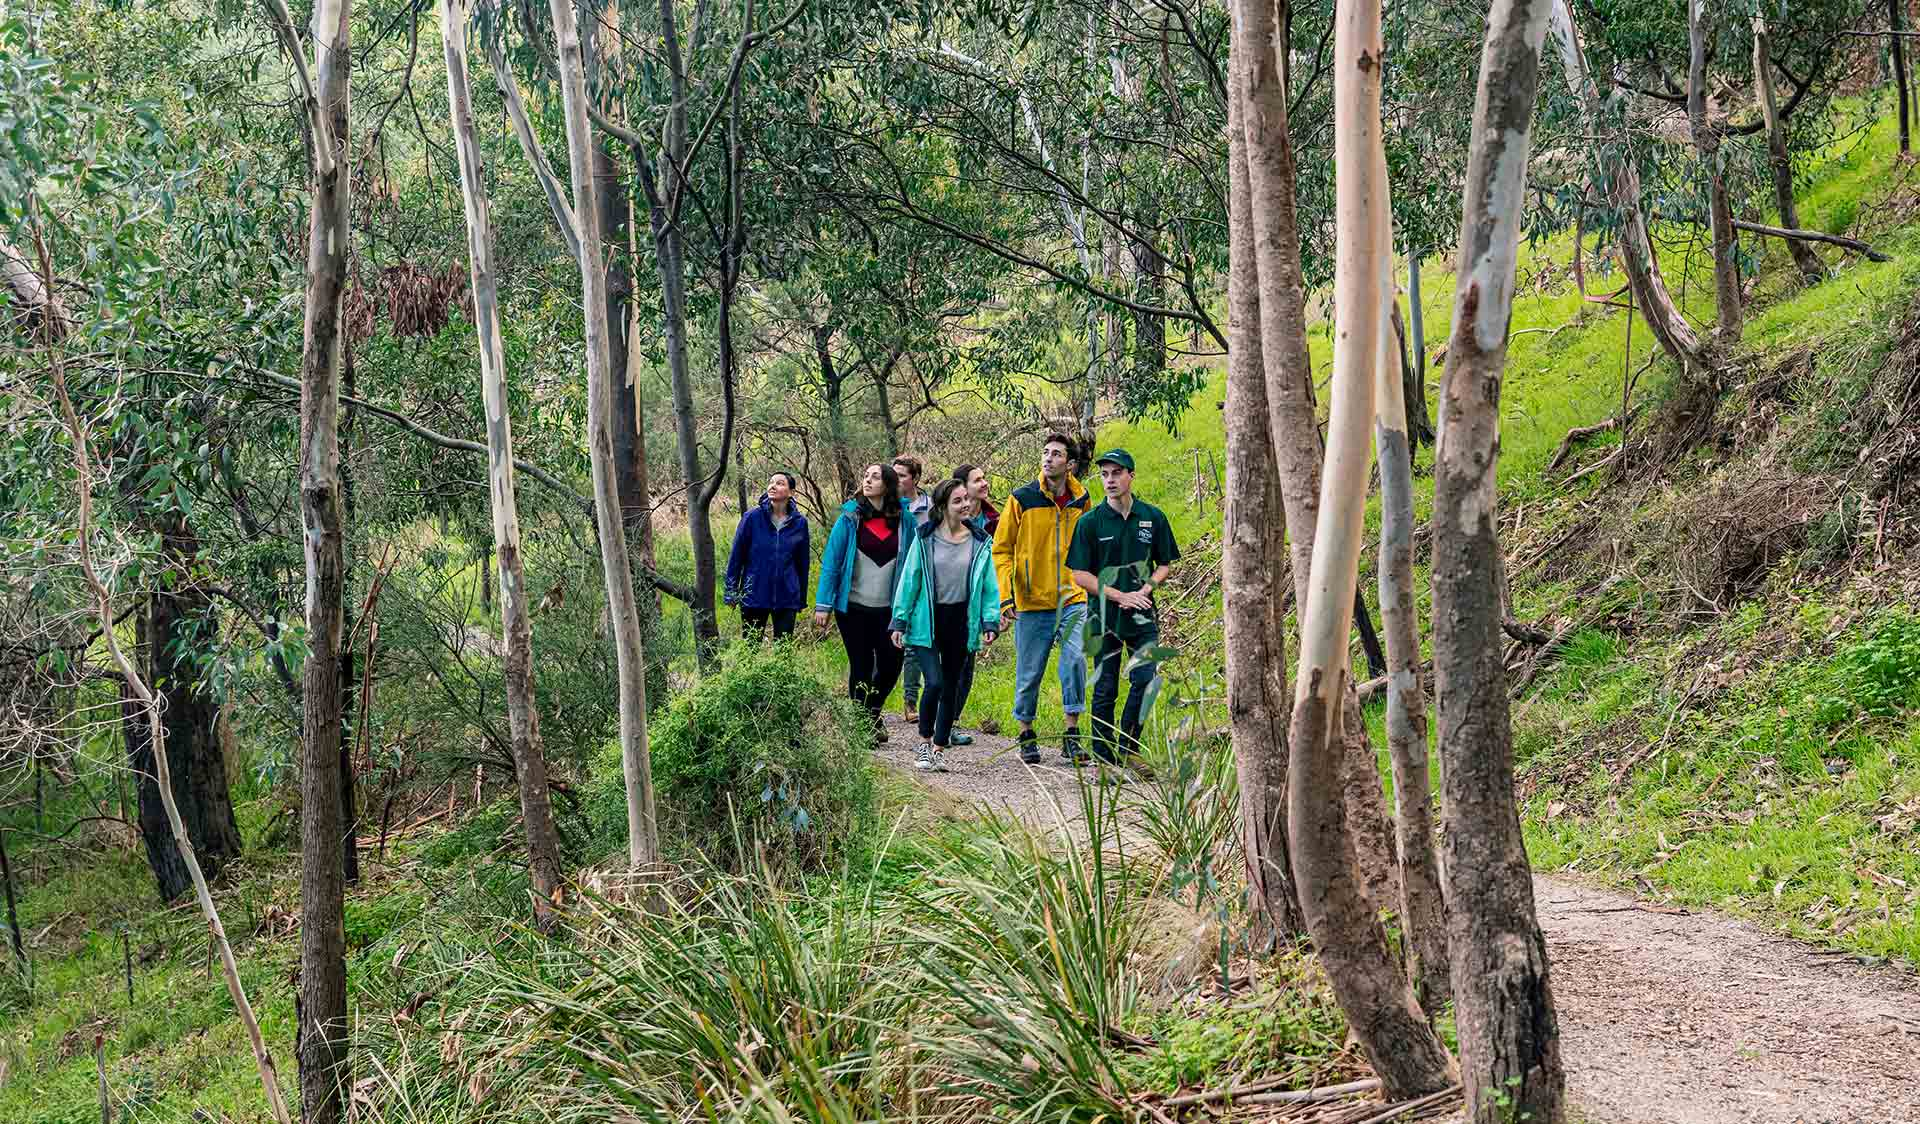 A ground take a volunteer led tour through the Flying Fox environments on the banks of the Yarra River in Yarra Bend Park